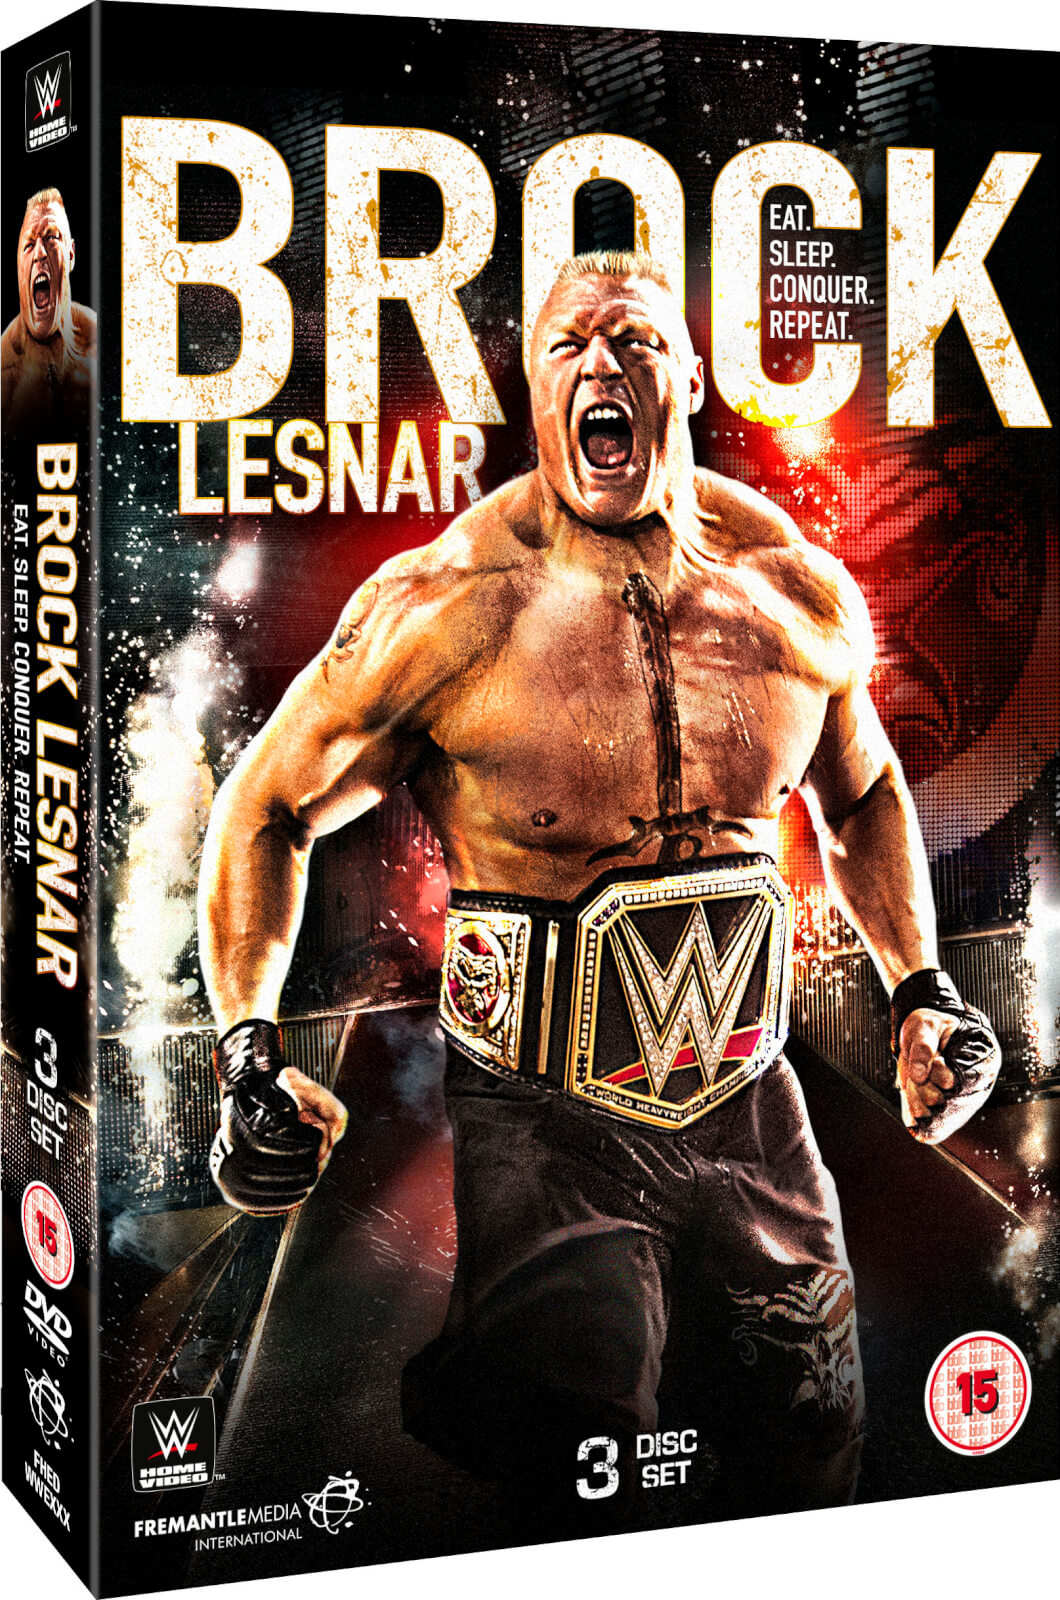 WWE: Brock Lesnar - Eat. Sleep. Conquer. Repeat.